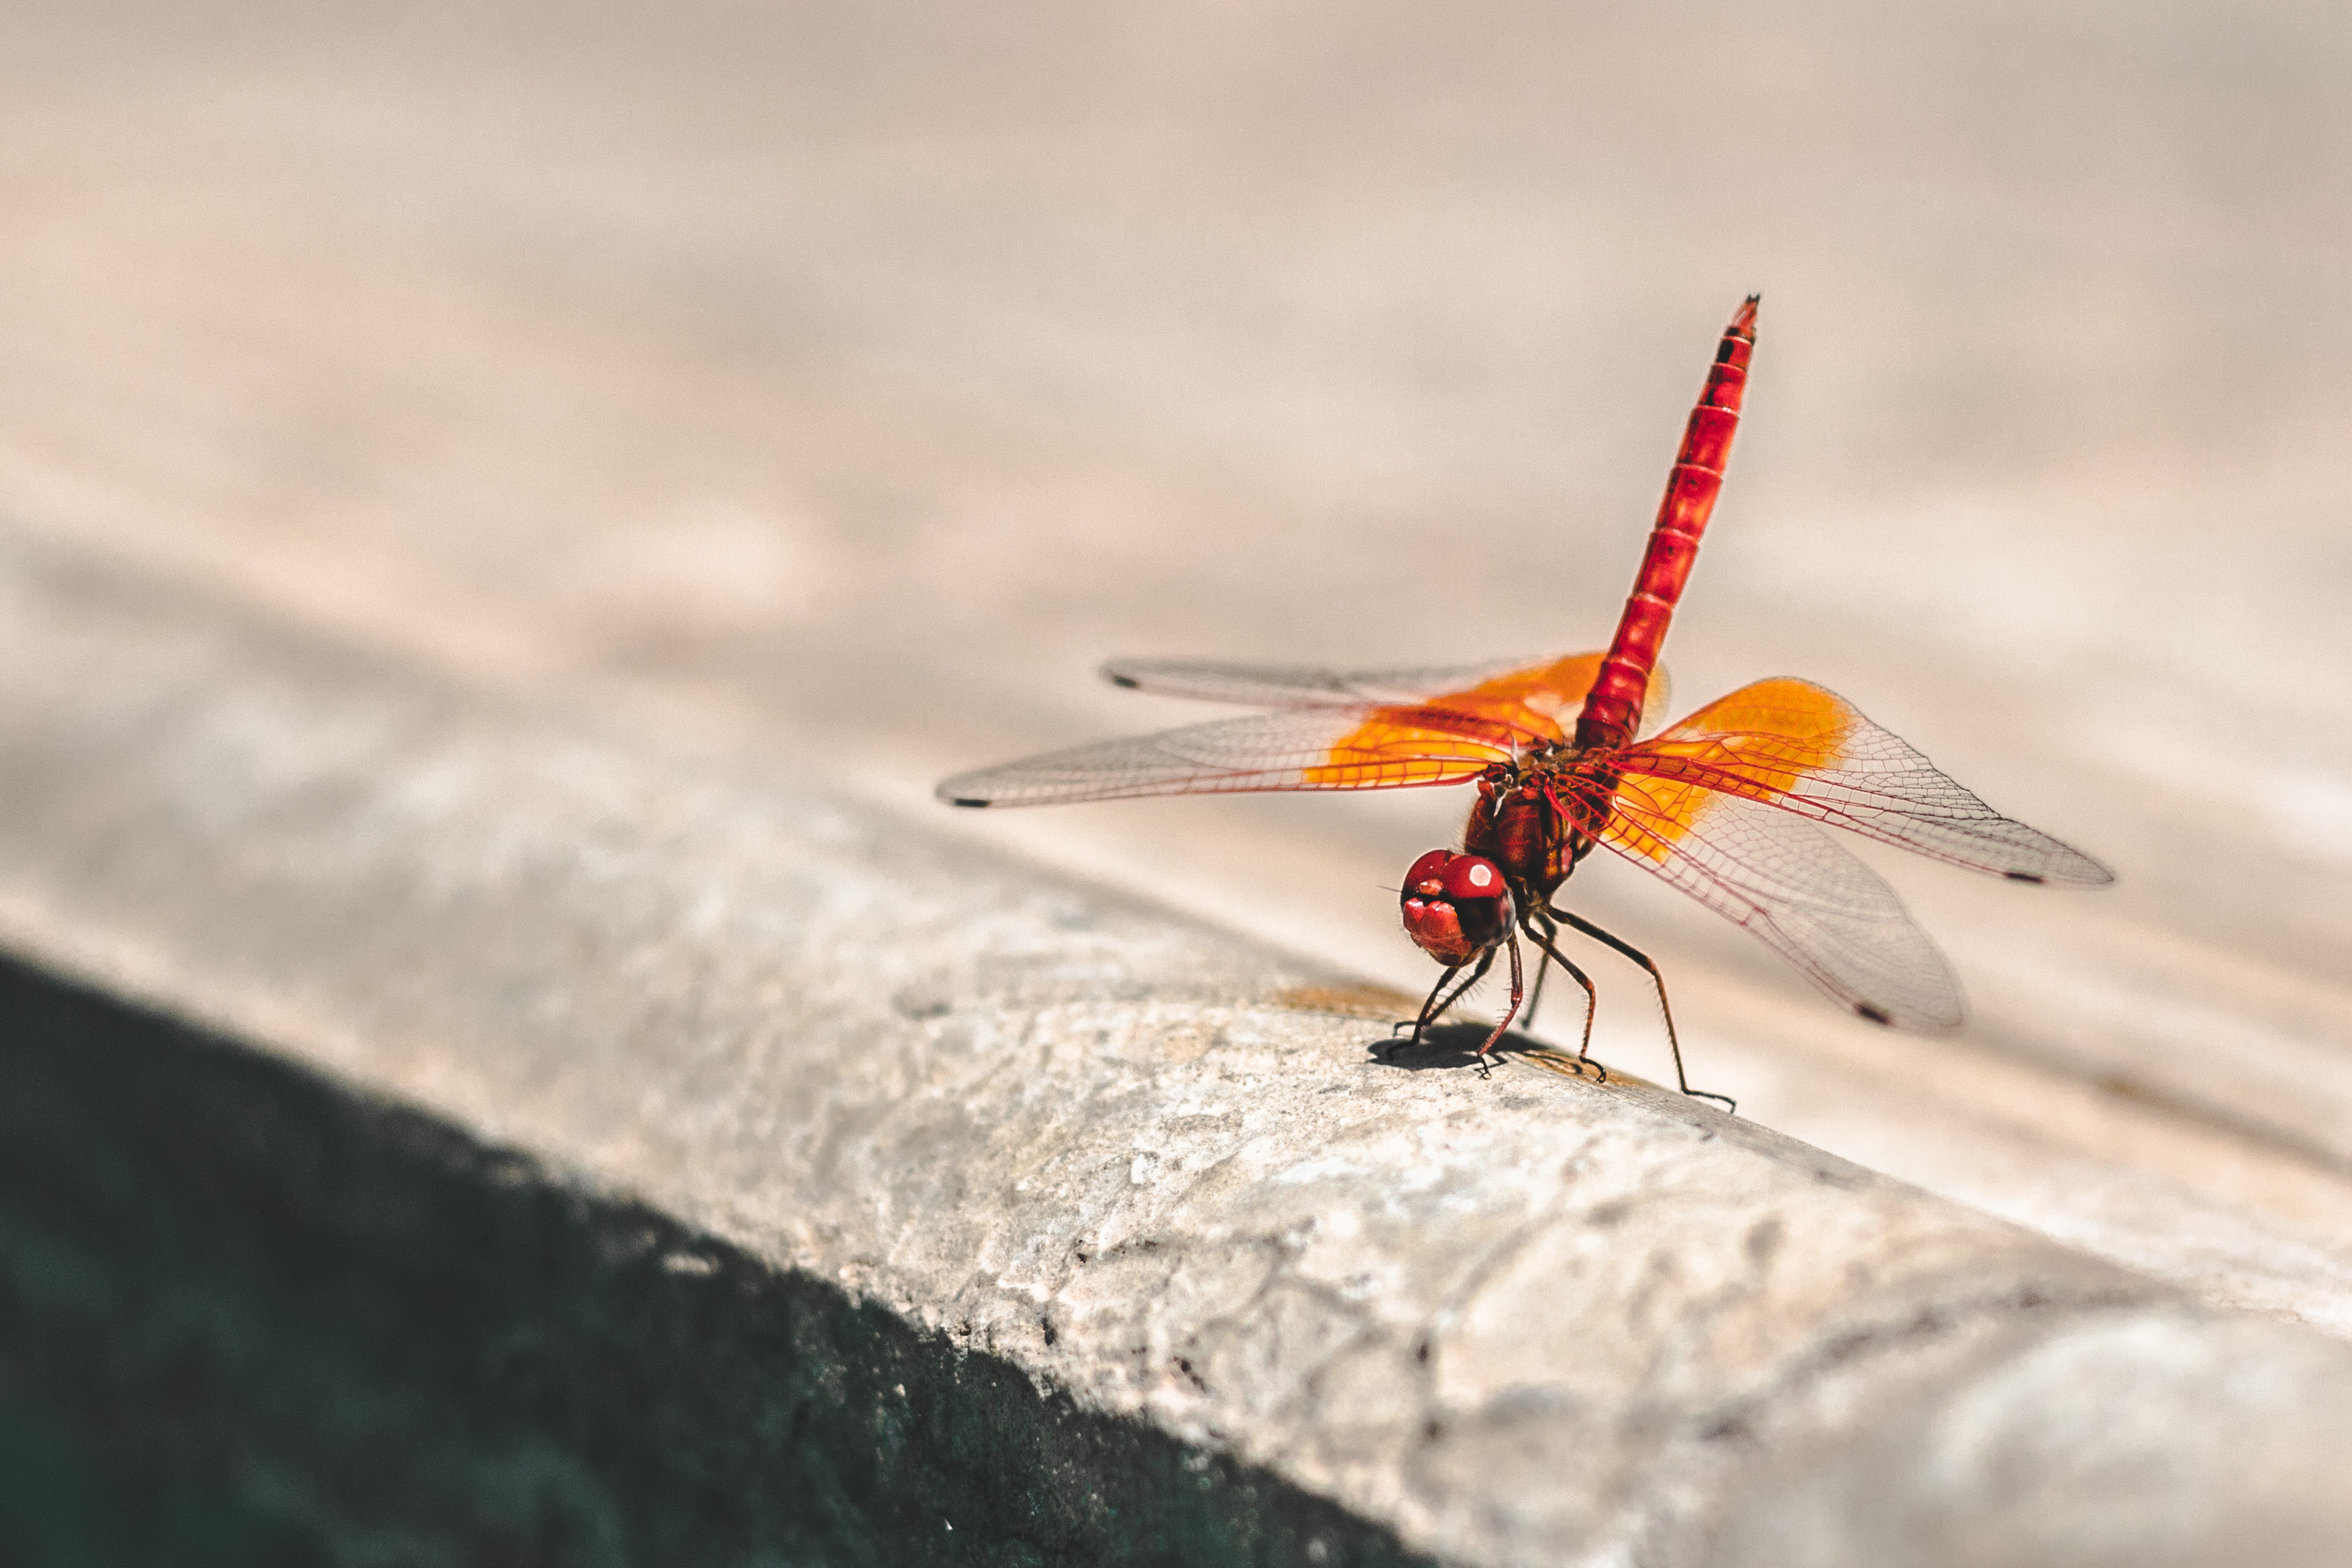 Wallpapers For Iphone 3 Dragonfly Pictures Download Free Images On Unsplash